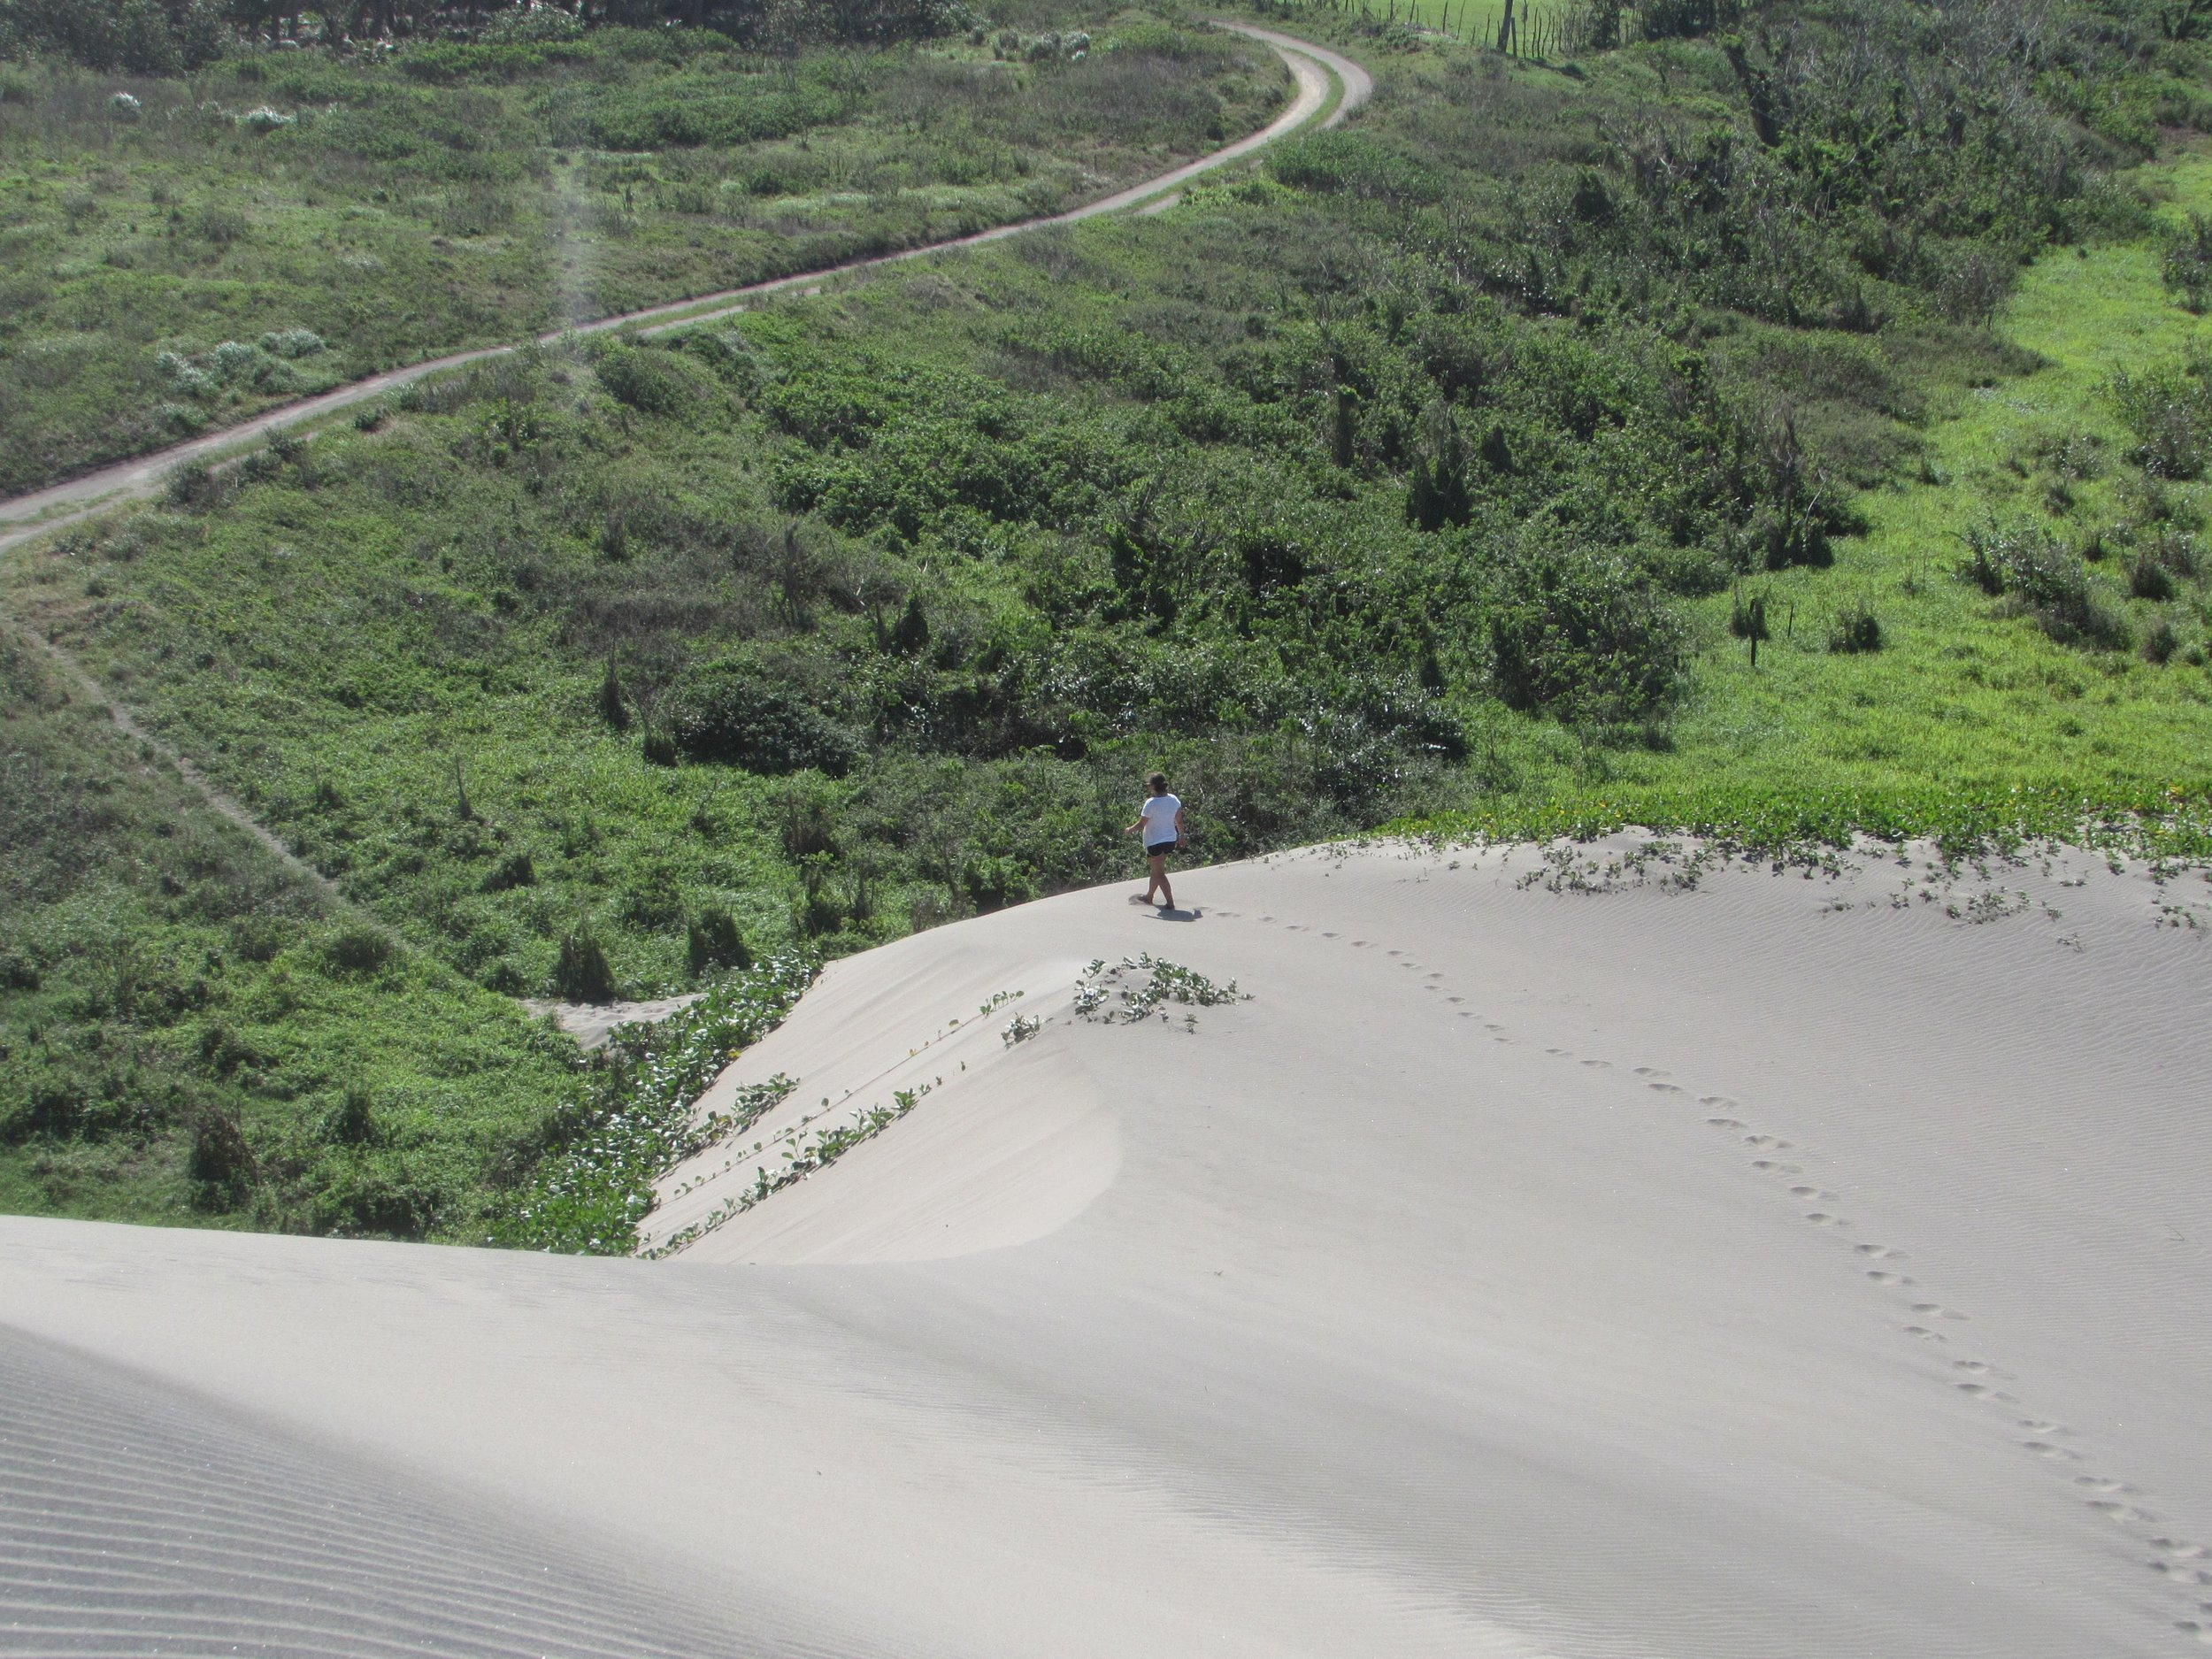 It felt otherworldly to walk down the wind-whipped dunes.